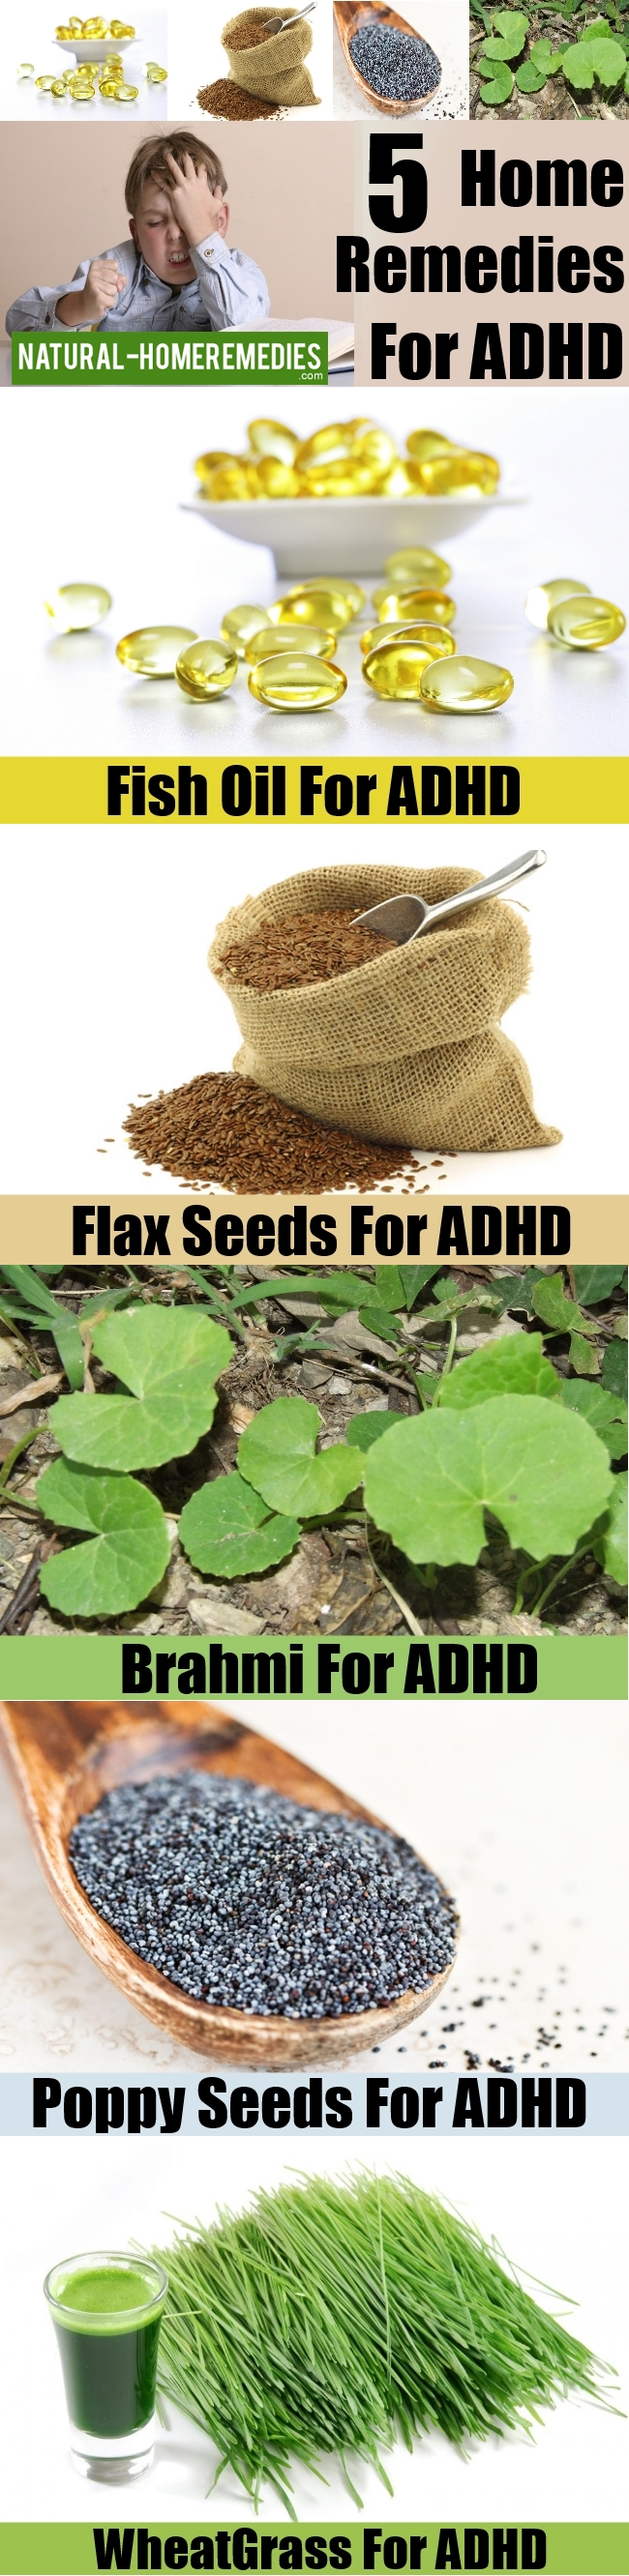 5 Home Remedies For ADHD